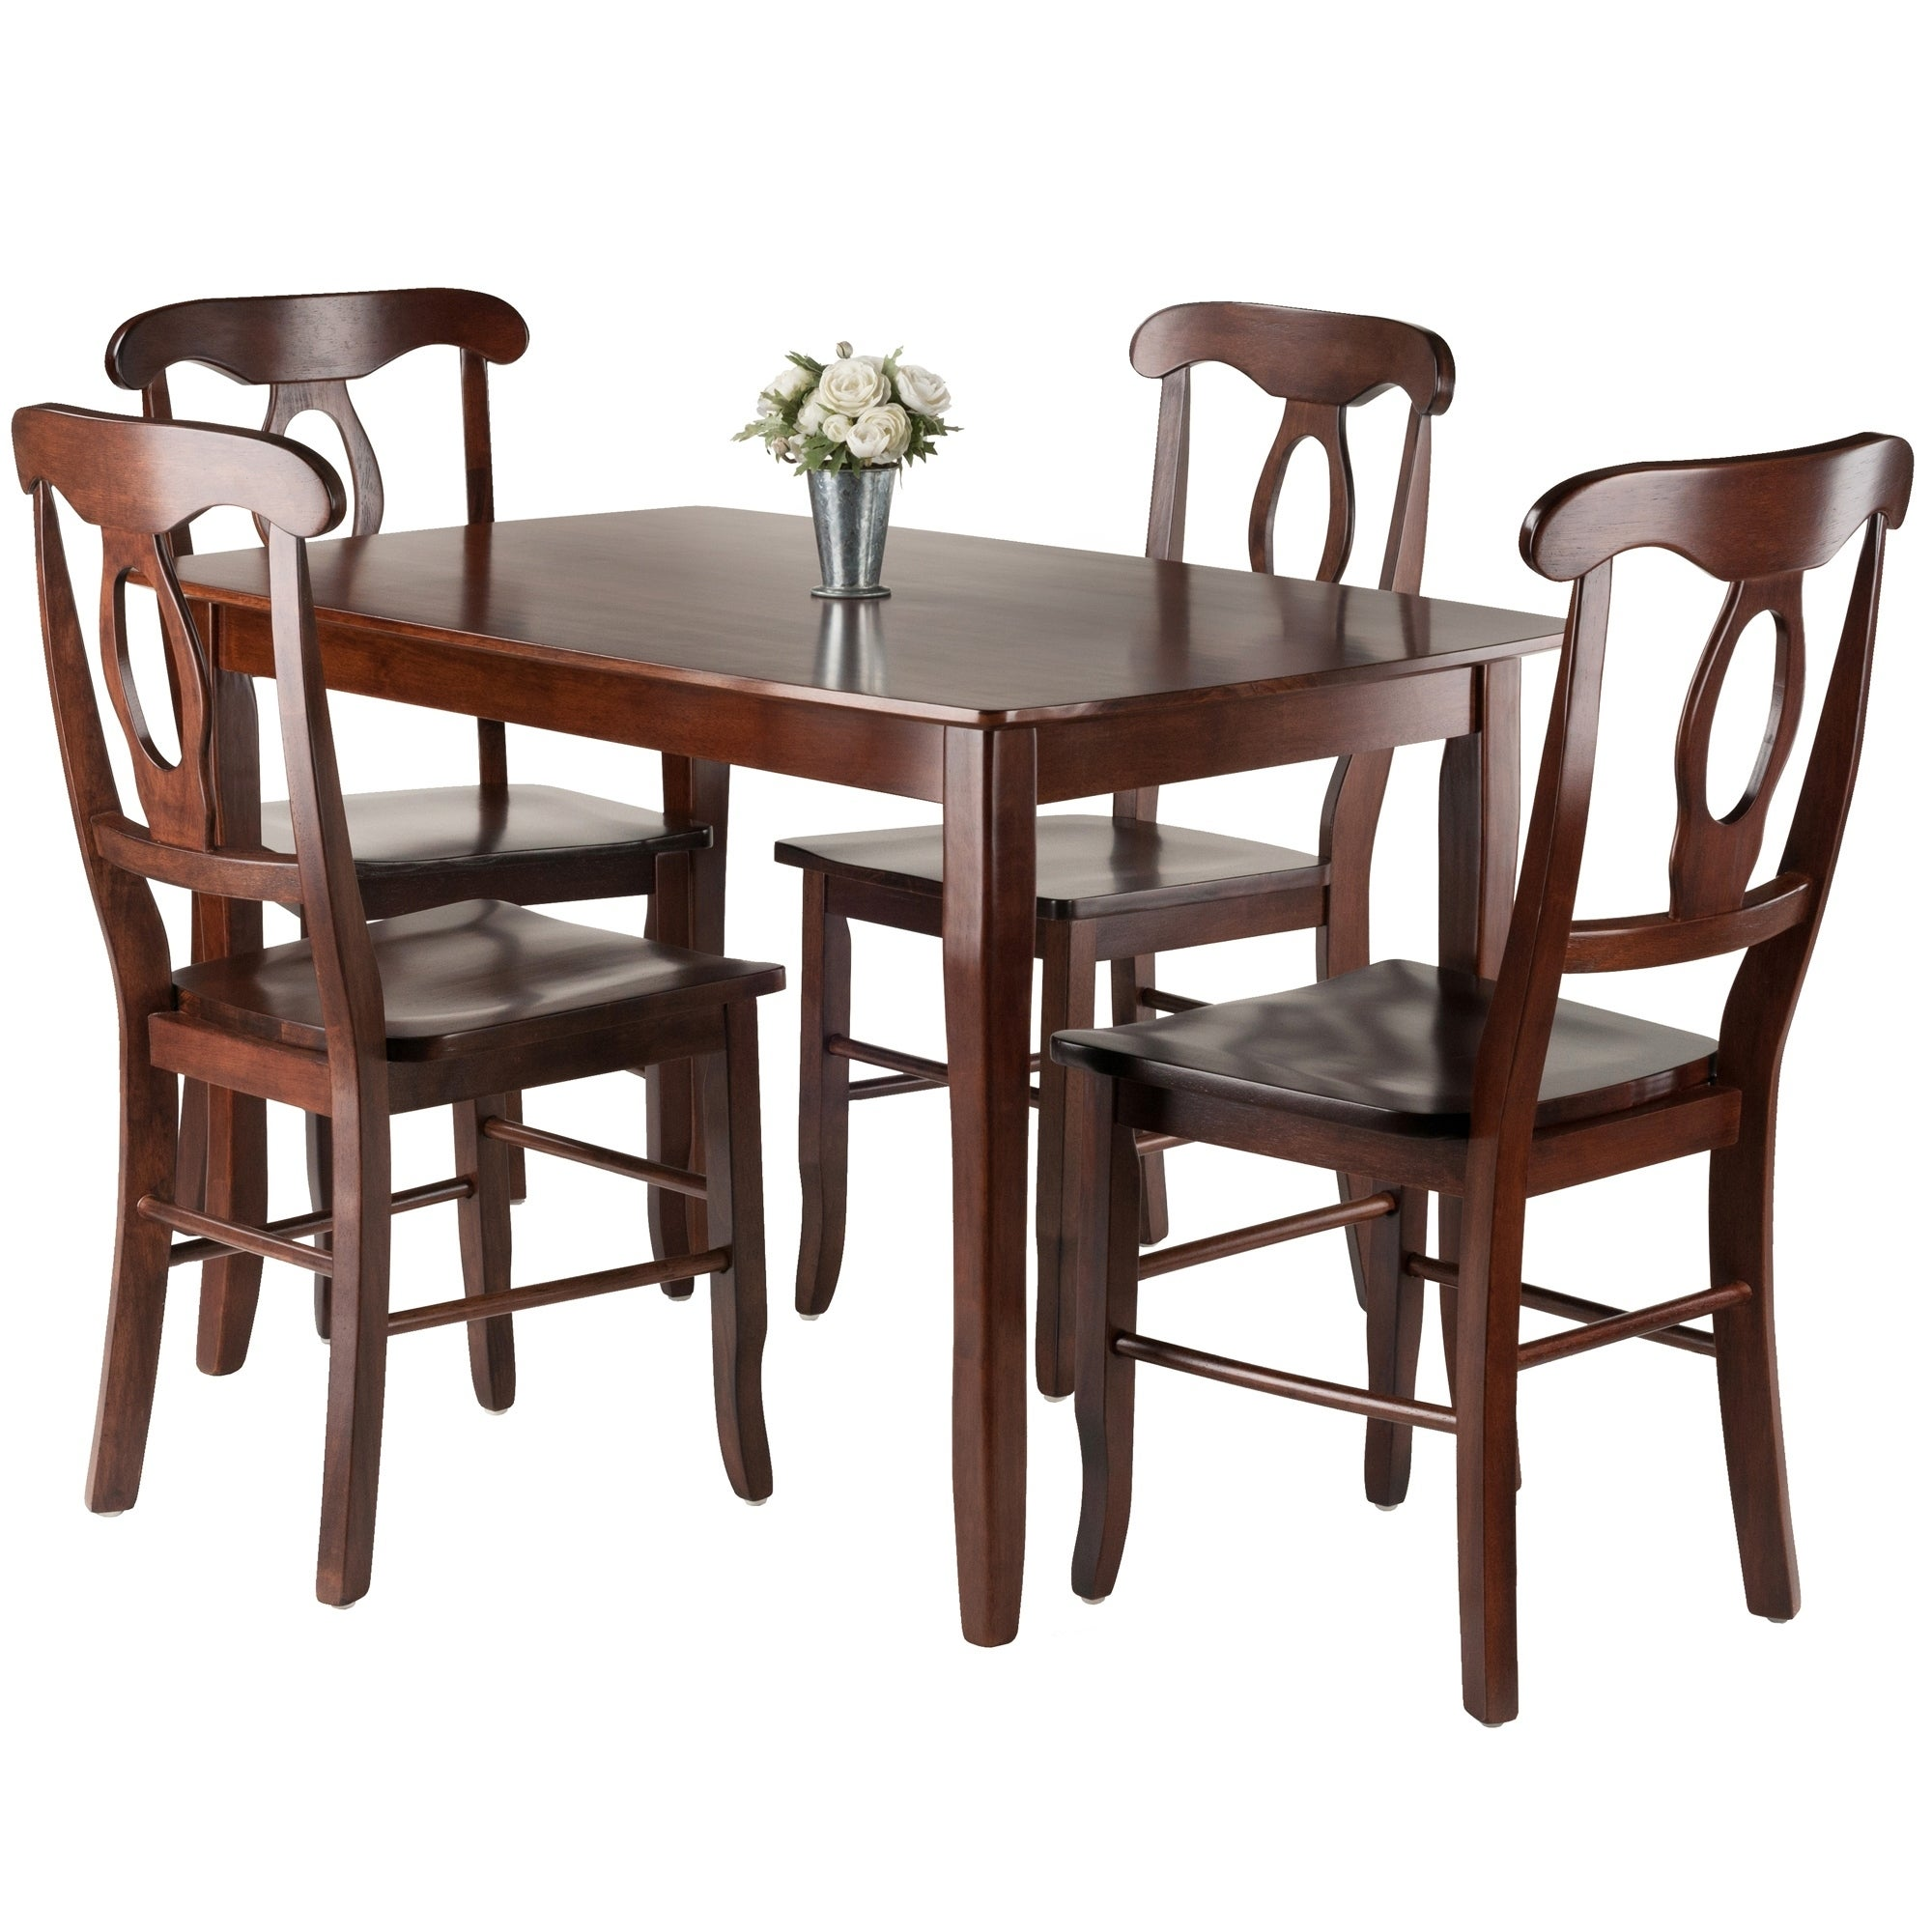 2a52a973eb9d8 Shop Inglewood 5-PC Set Dining Table w/ 4 Key Hole Back Chairs - Free  Shipping Today - Overstock - 20735422